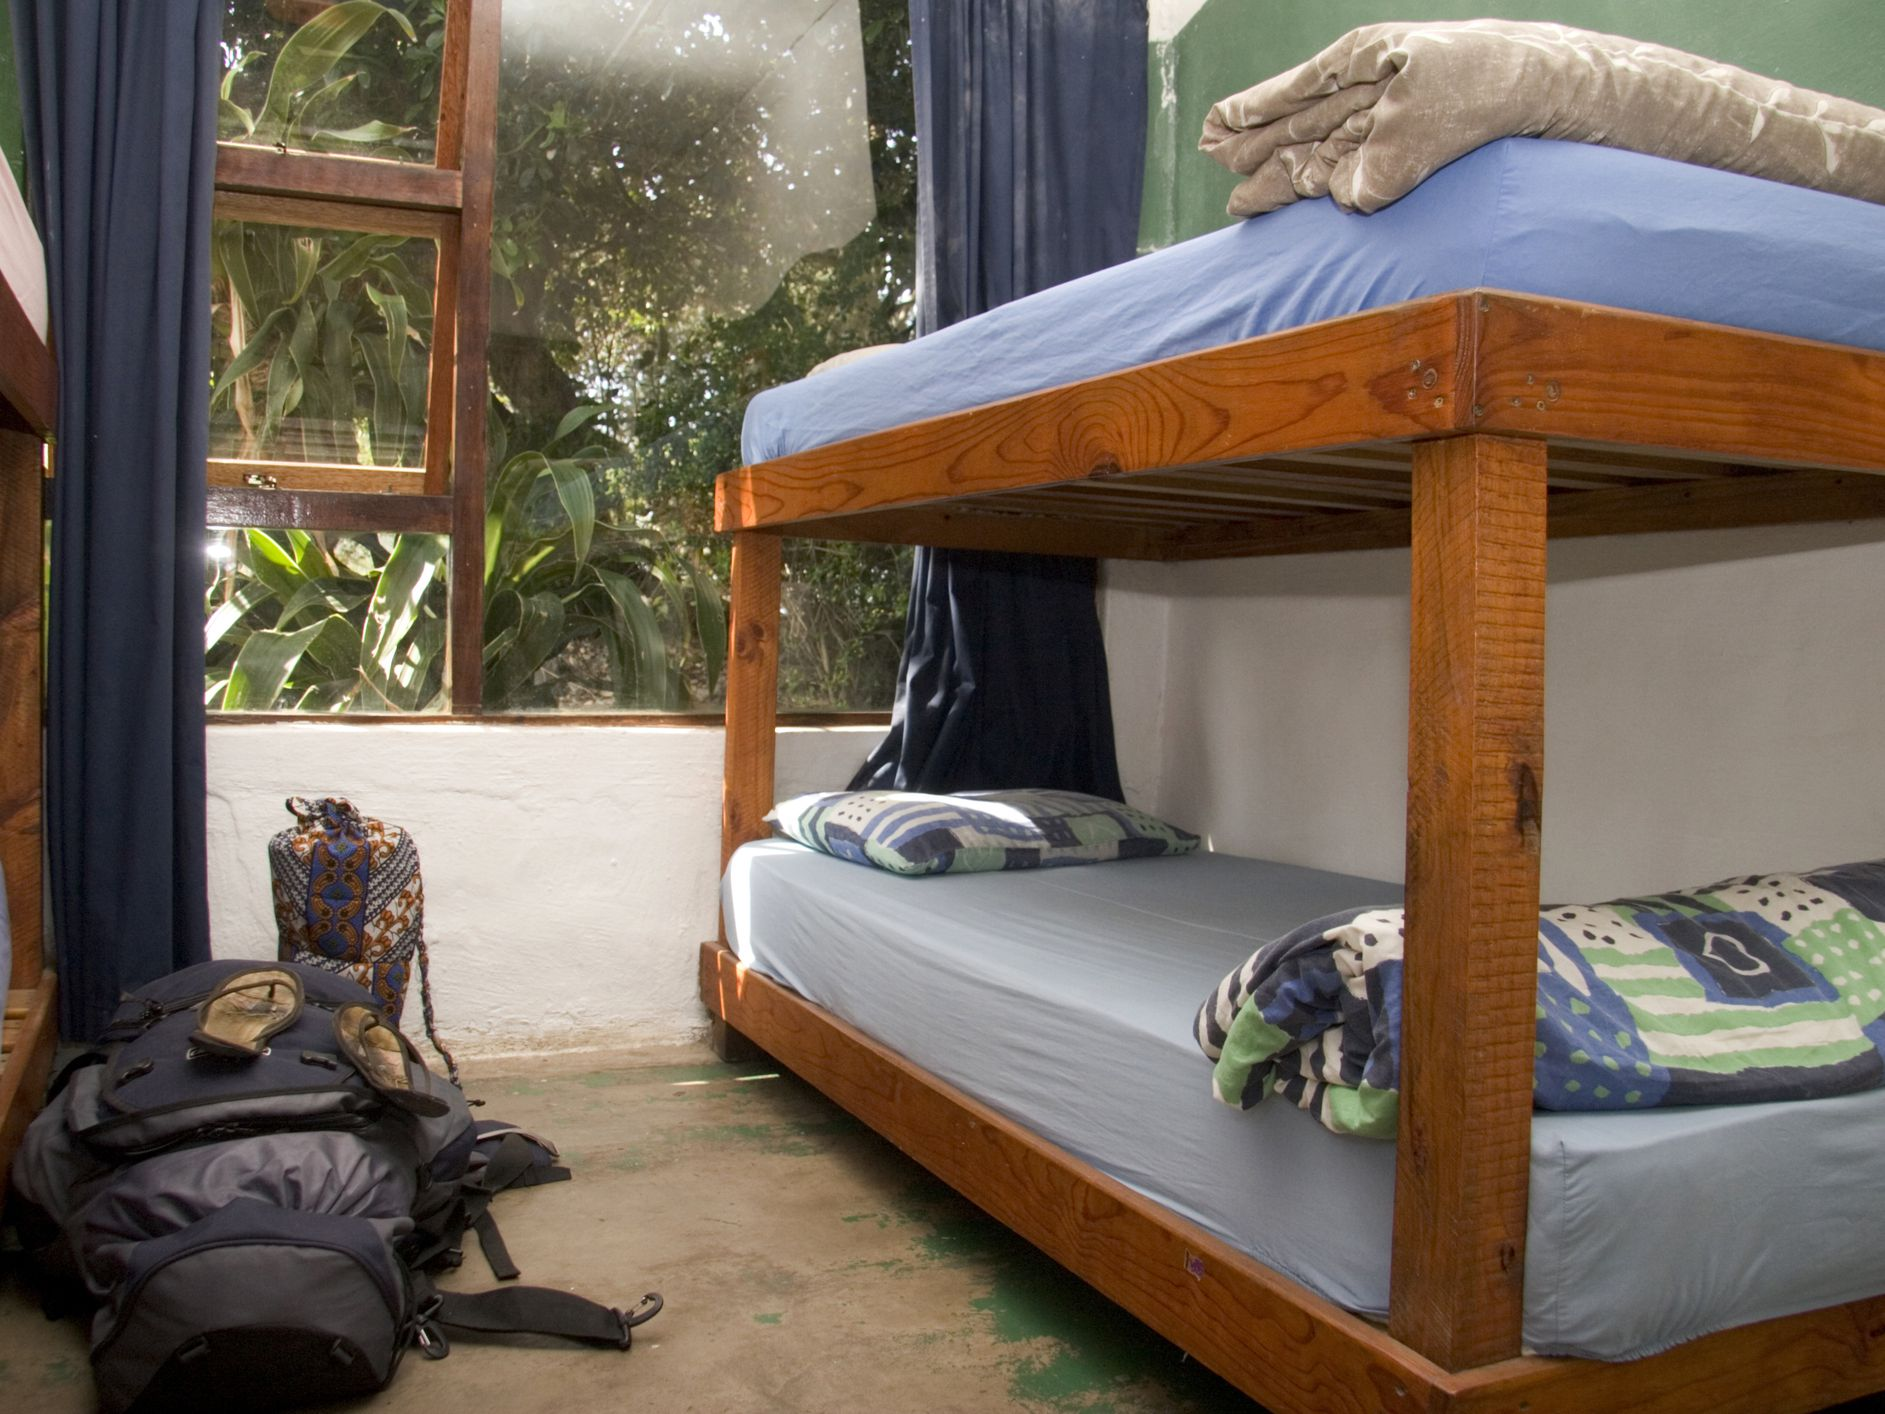 All About Hostels and How Hostels Work